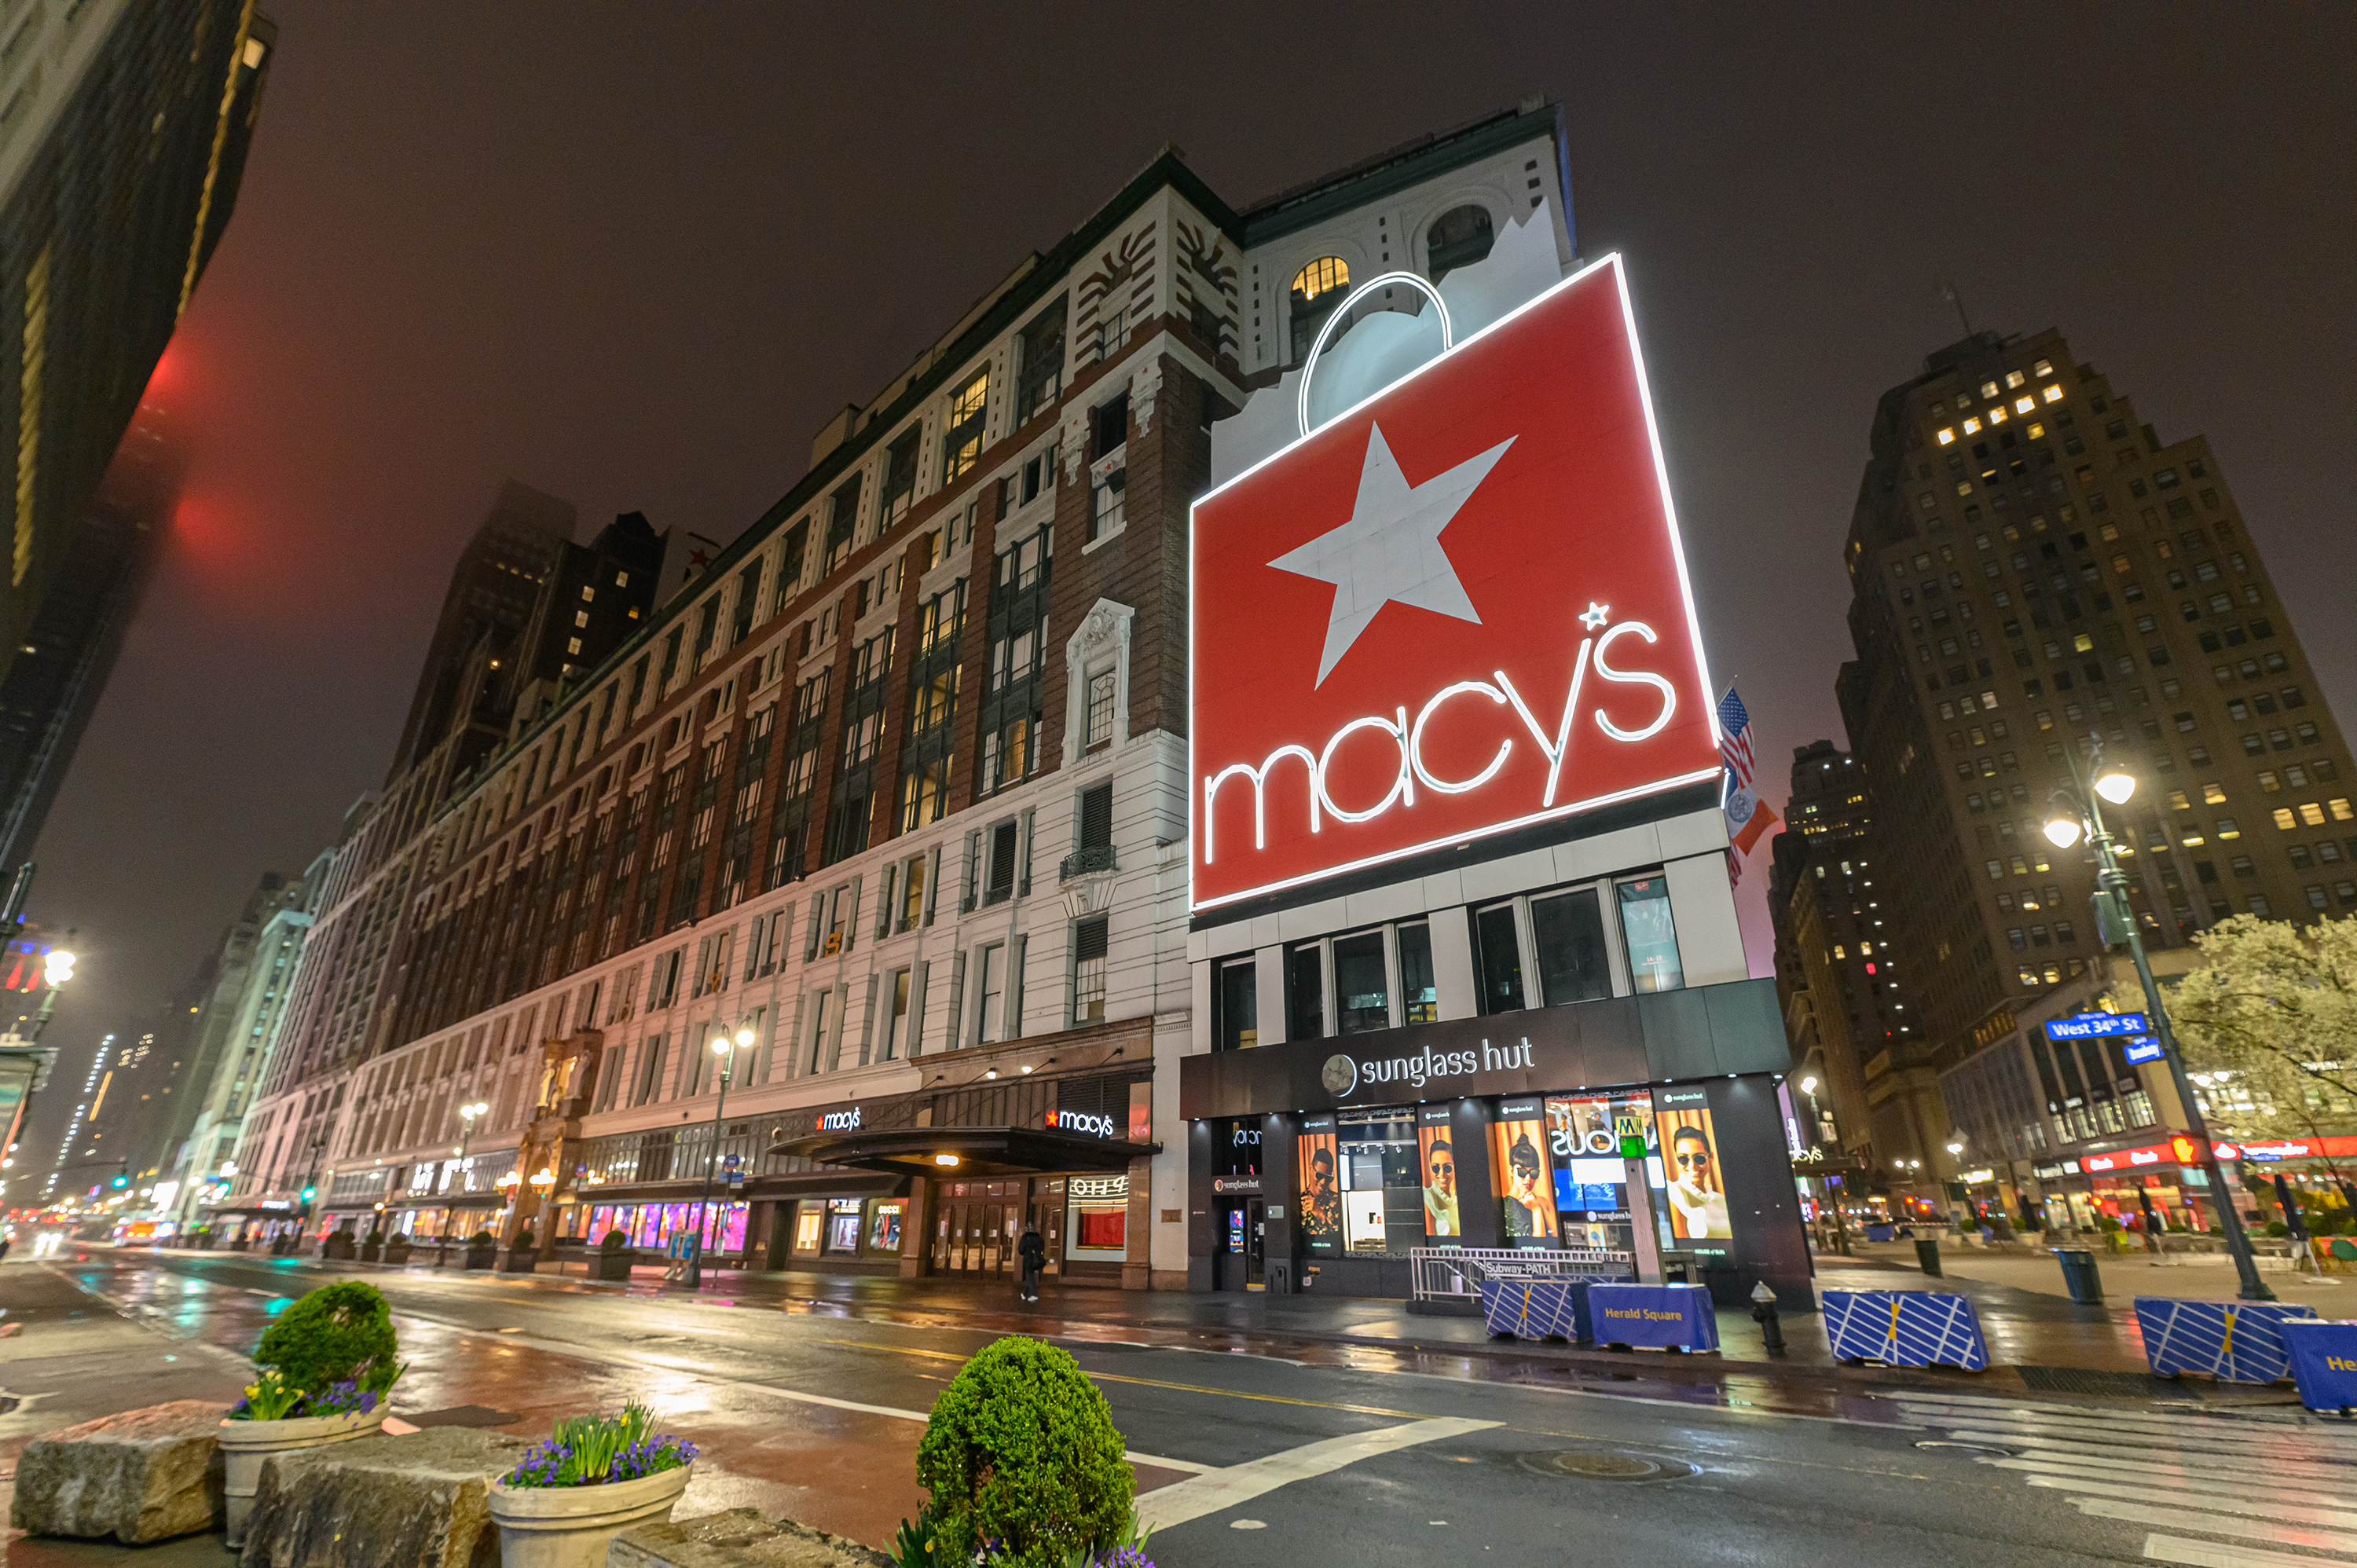 Macy's will furlough the majority of its 125,000 employees